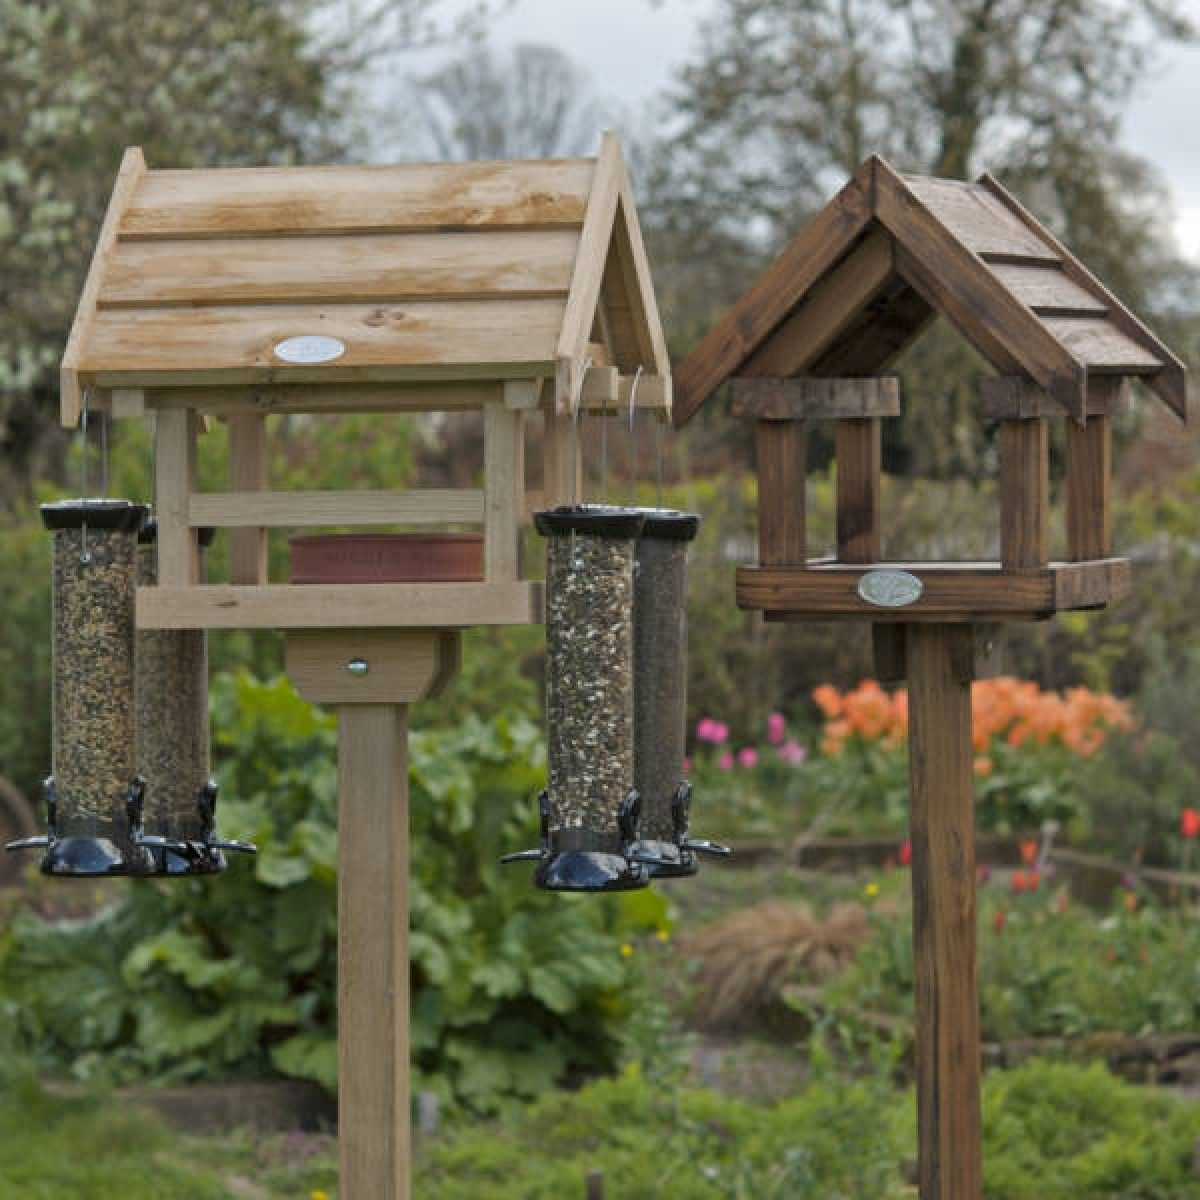 Birdhouse constructed of wood bird house design free standing bird - What To Consider In A Bird Feeder Stand Free Standing Bird Feeders